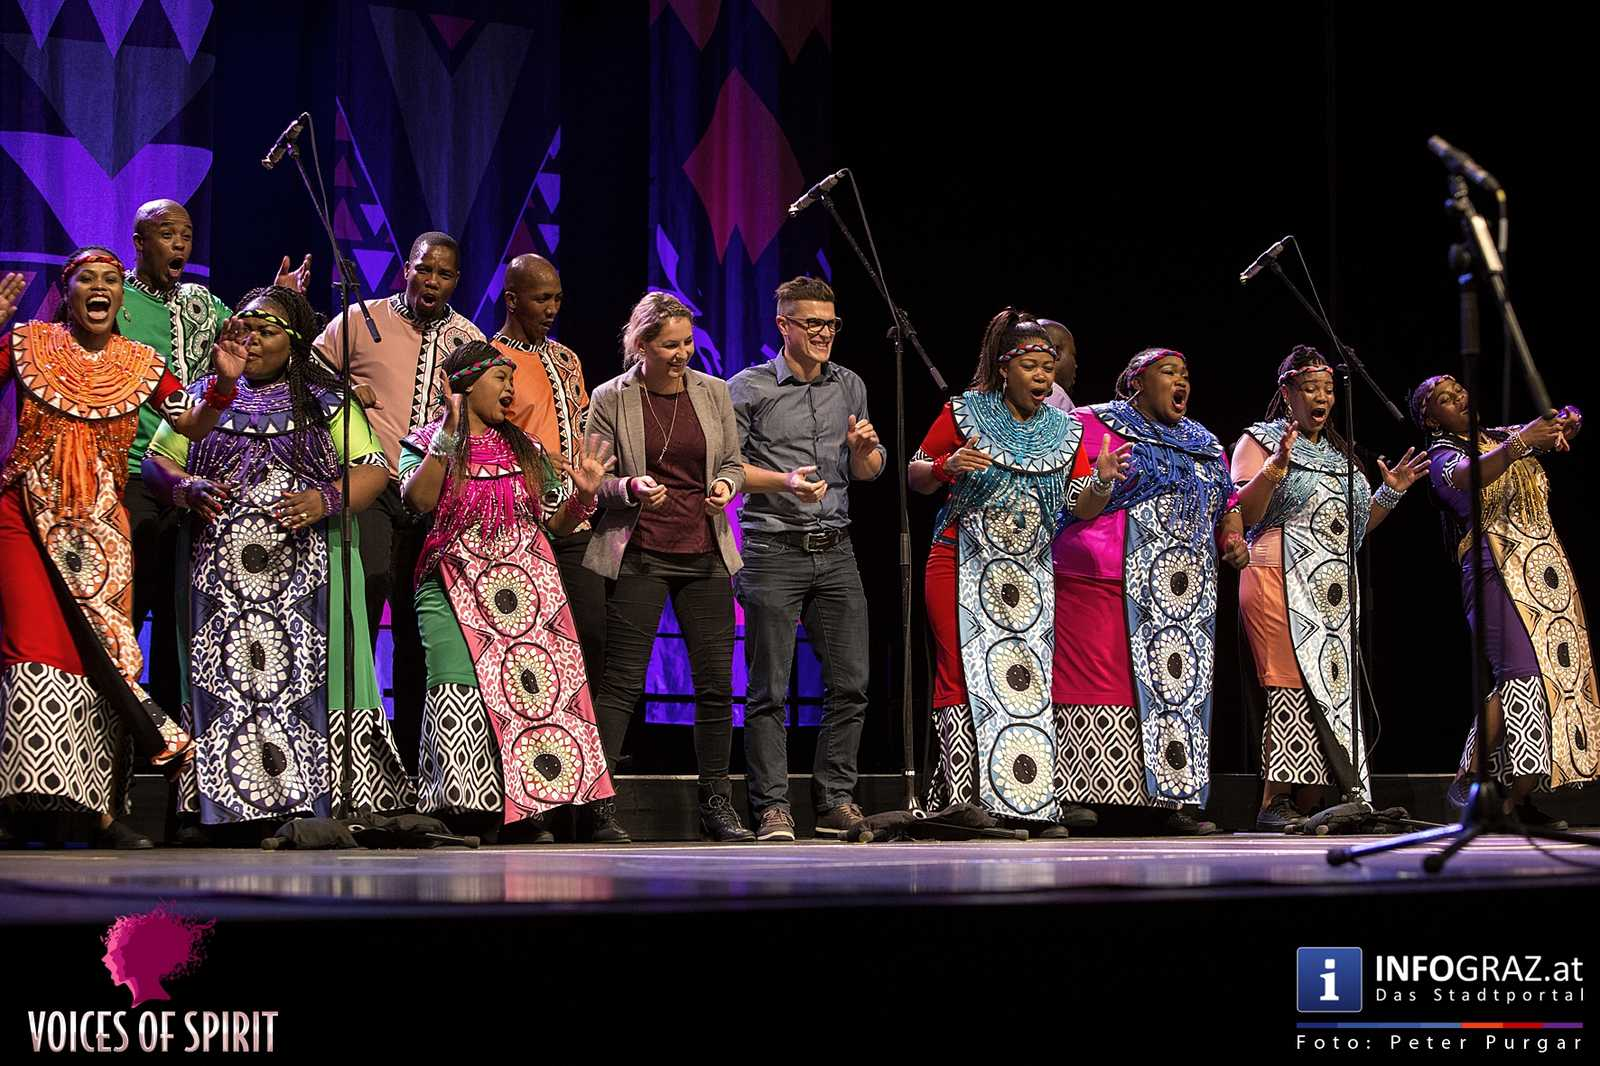 soweto gospel choir internationales chorfestival statdthalle graz voices of spirit eroeffnung festivals 2016 121